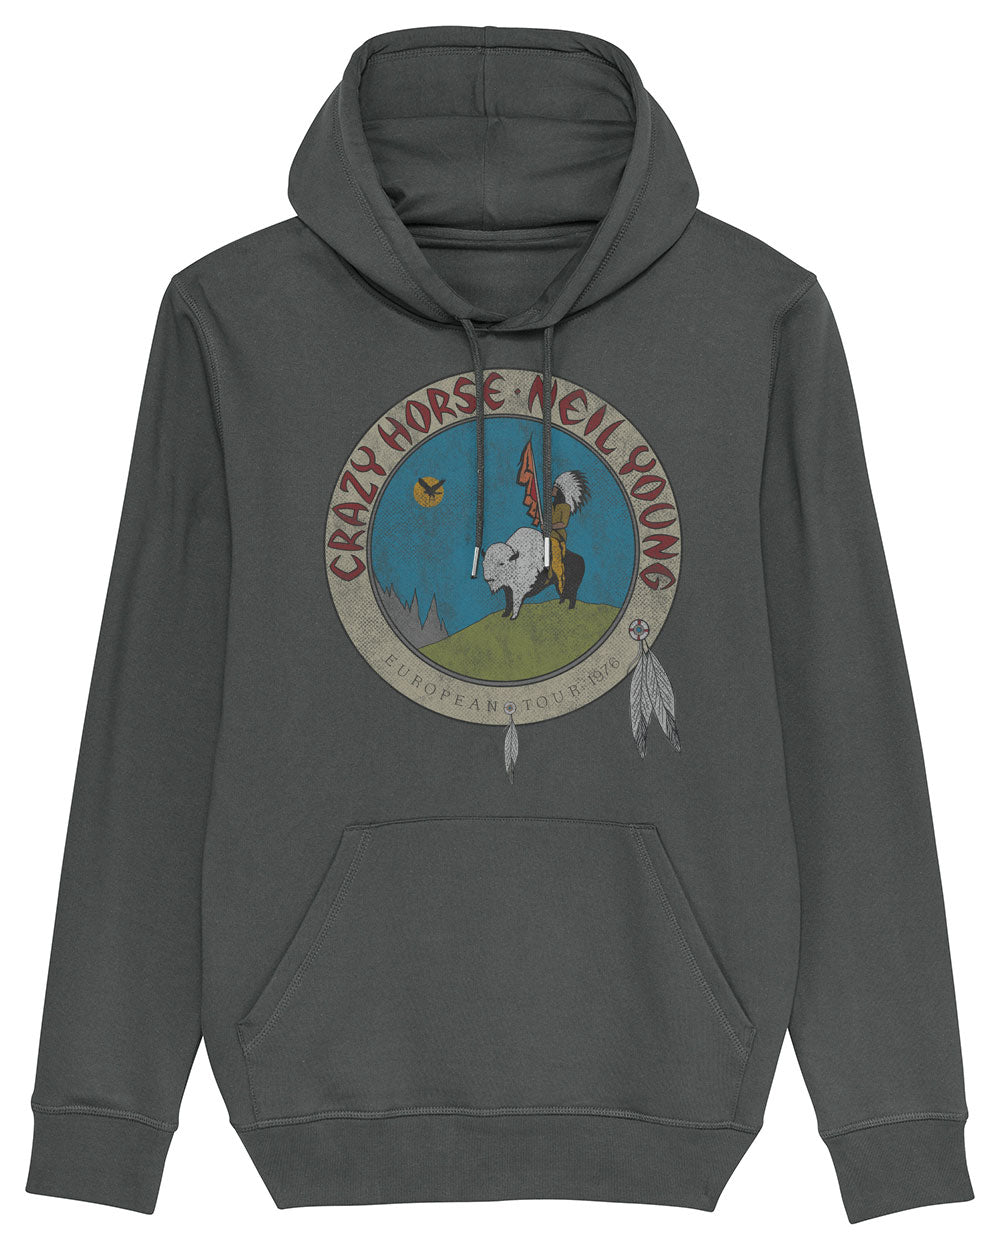 Neil Young Hoodie - Neil Young Euro Tour 1976 Hoodie